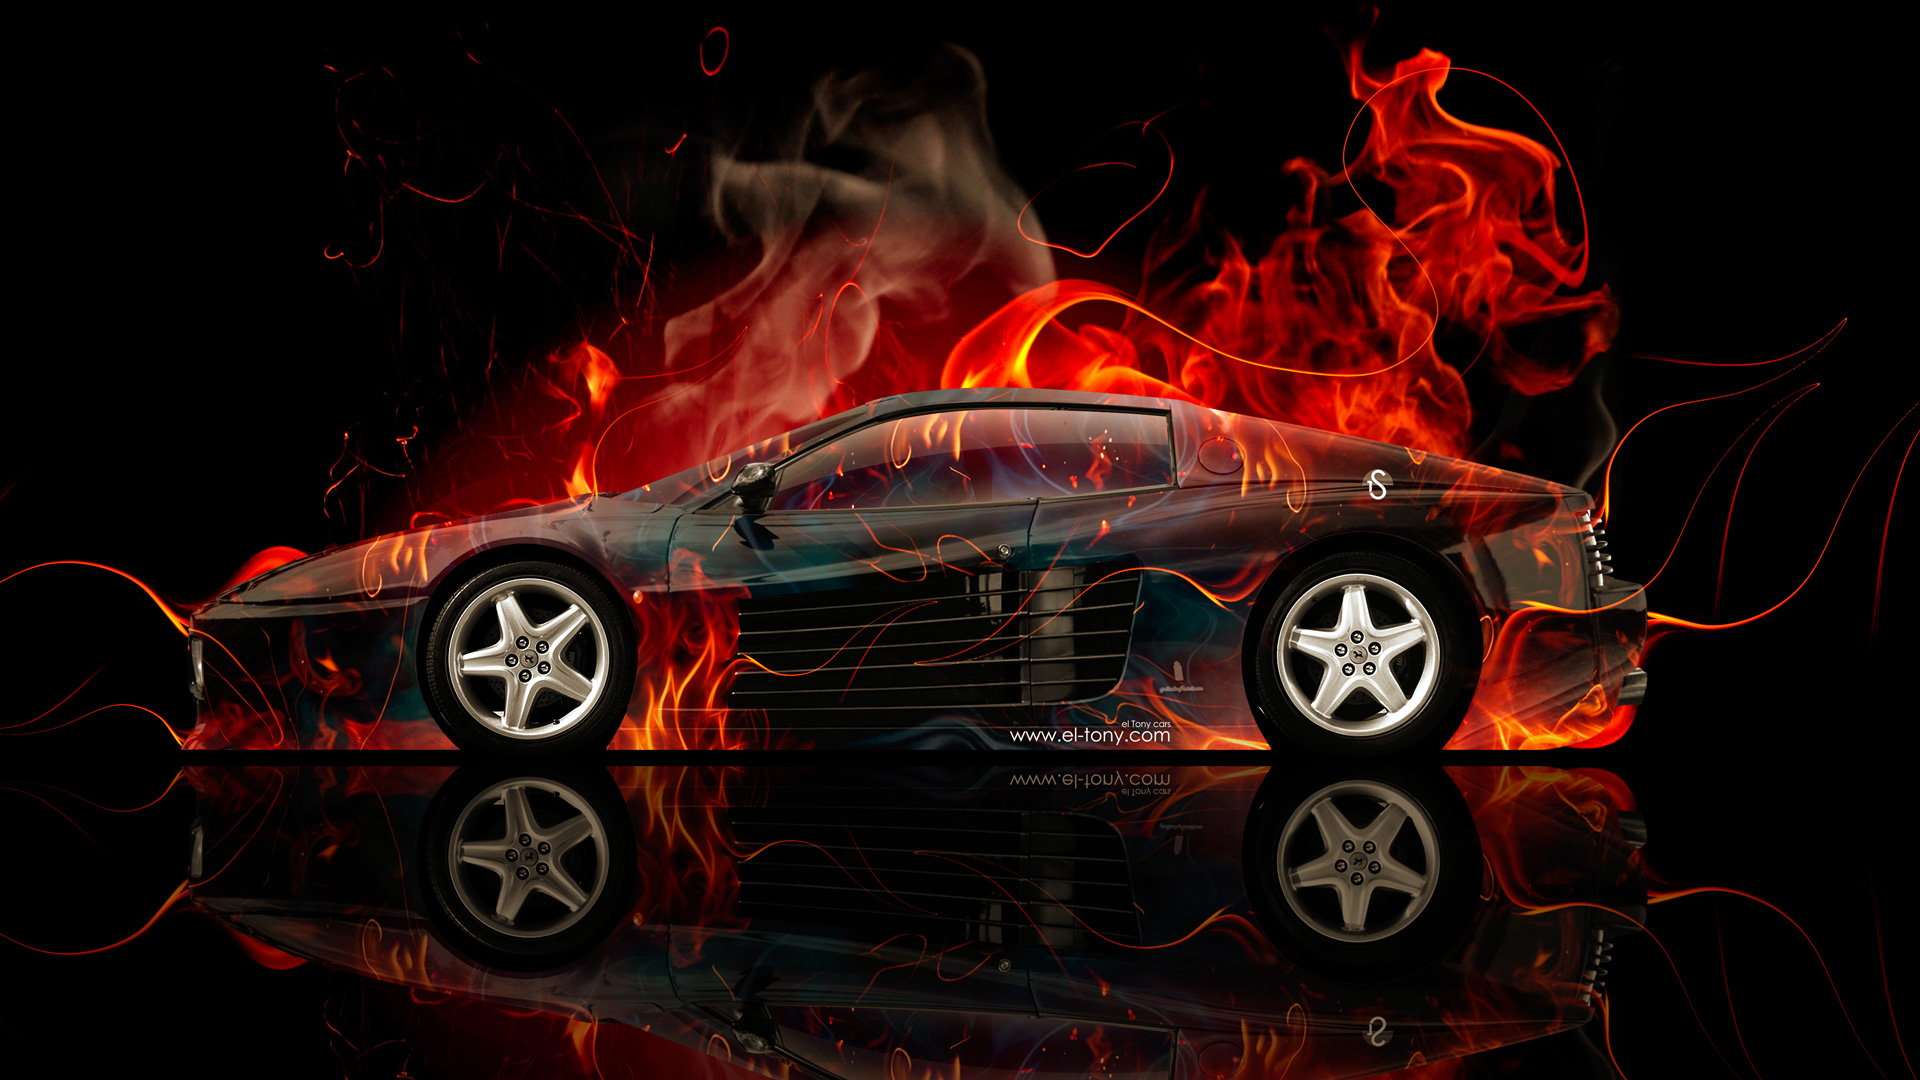 Superieur Ferrari 512 Side Fire Abstract Car 2014 HD